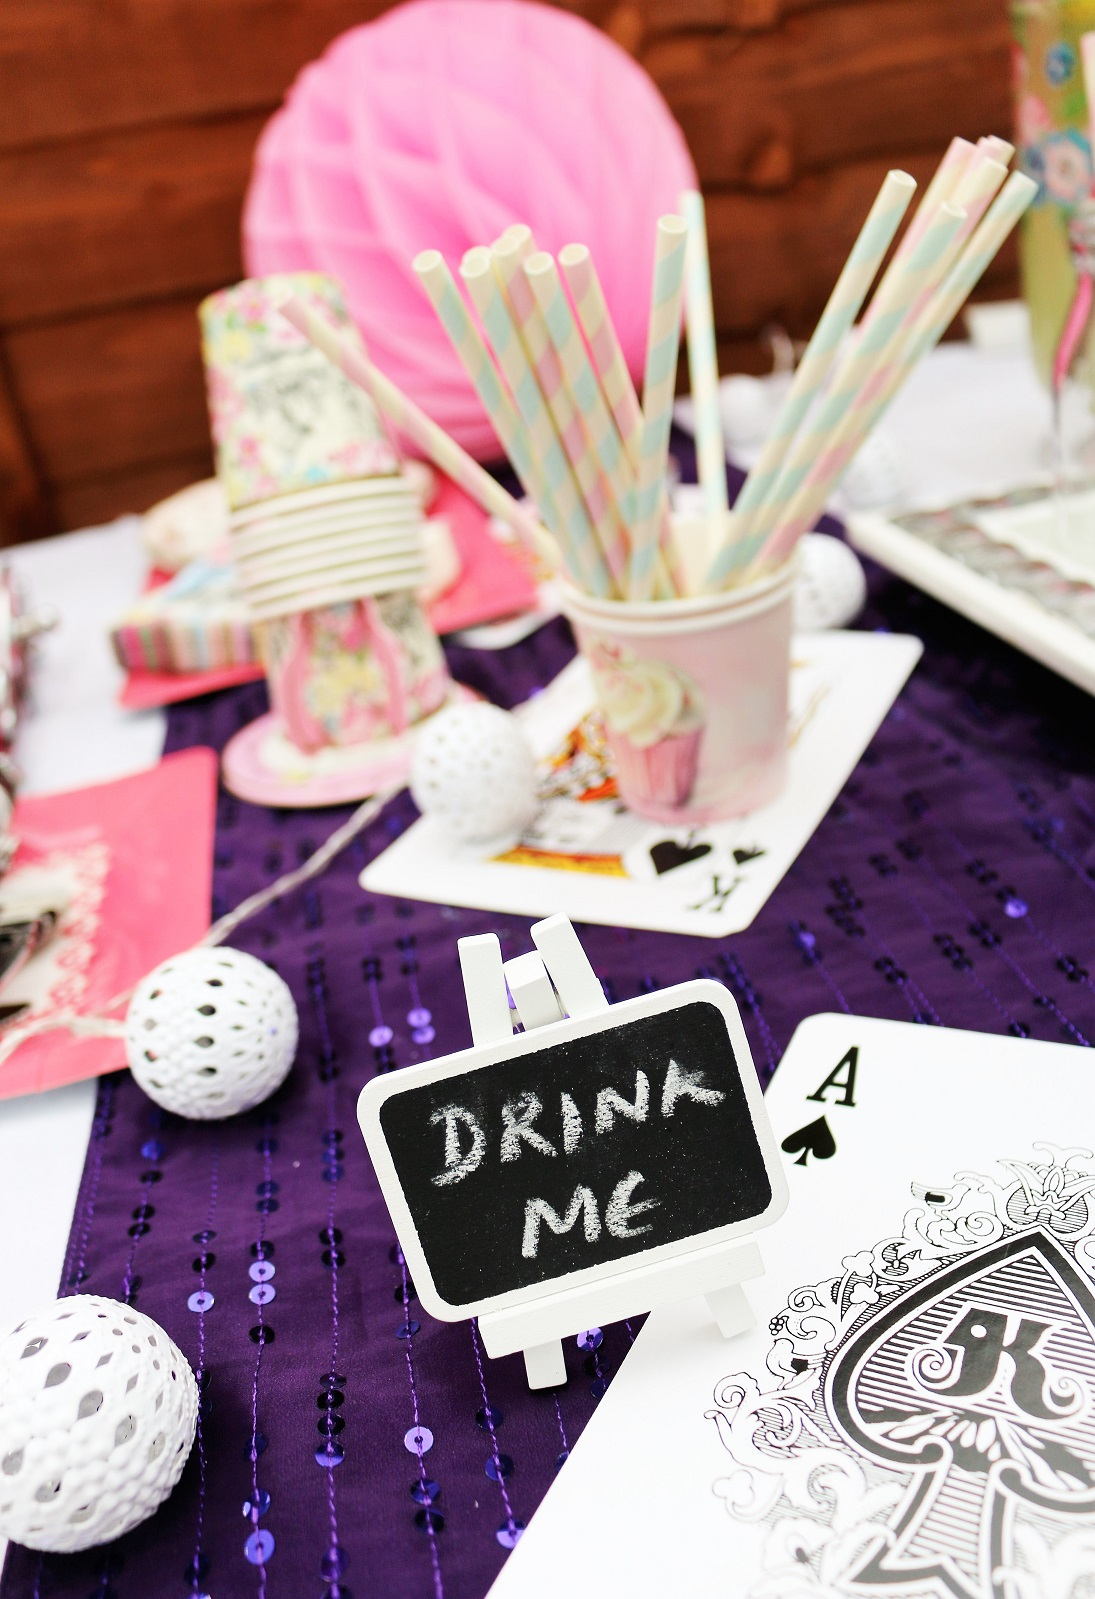 alice in wondereland theme party drink me table decor